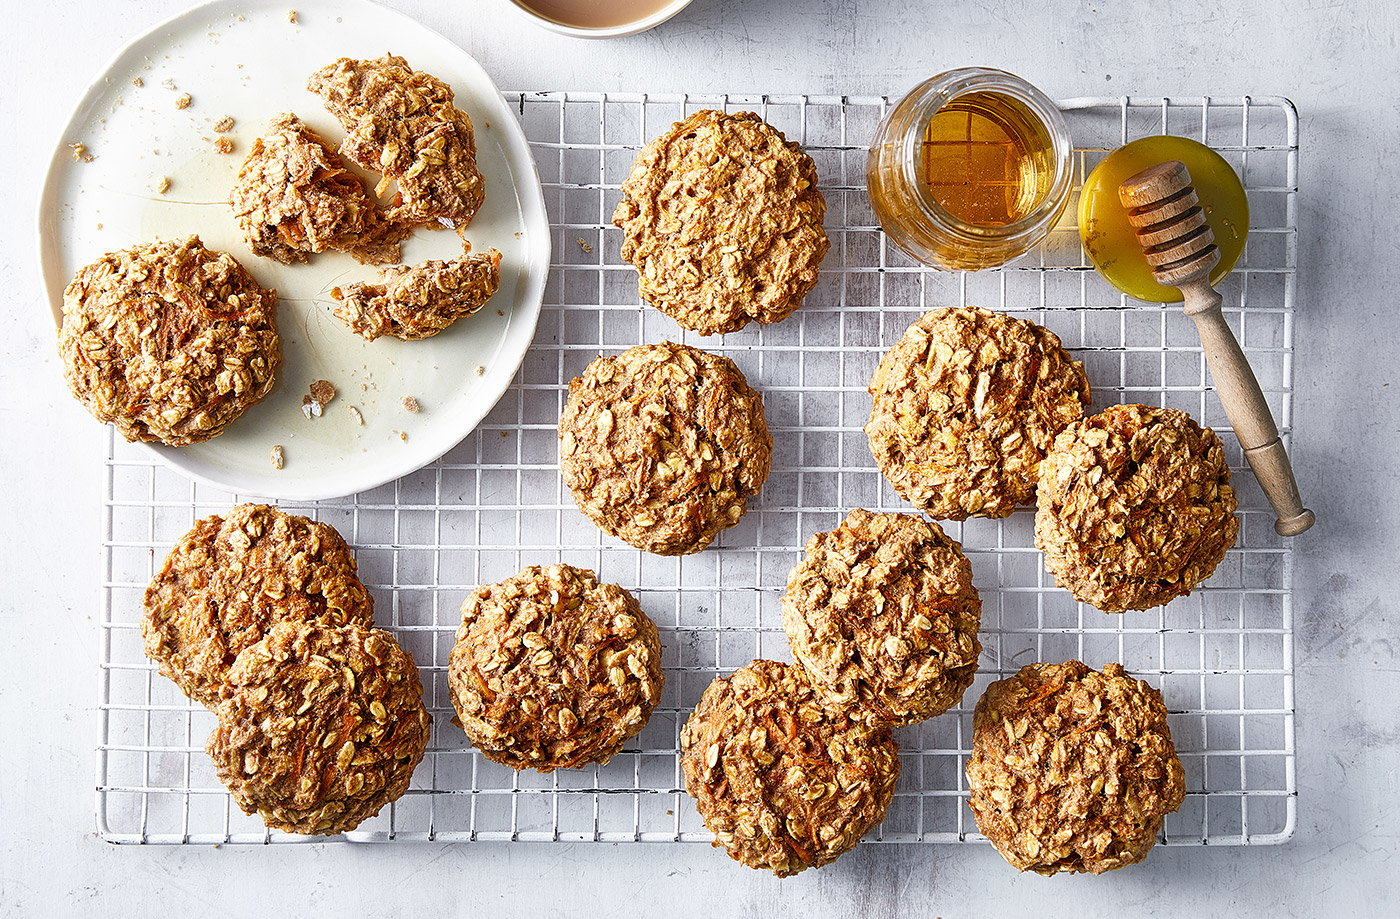 Make-ahead breakfast cookies recipe